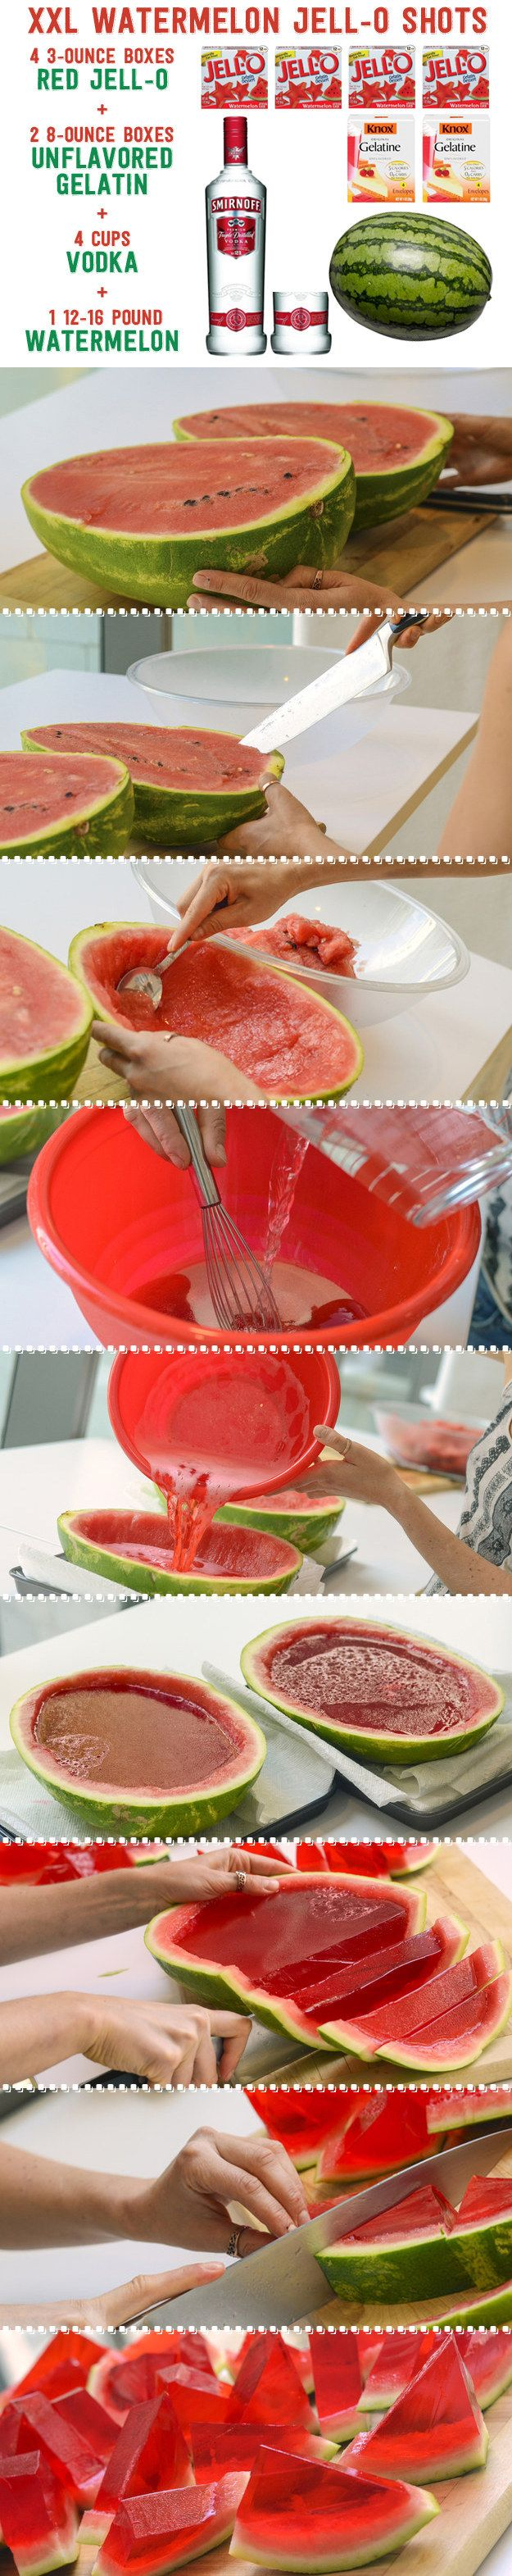 Make these awesome watermelon Jell-O shots for your 4th of July party!